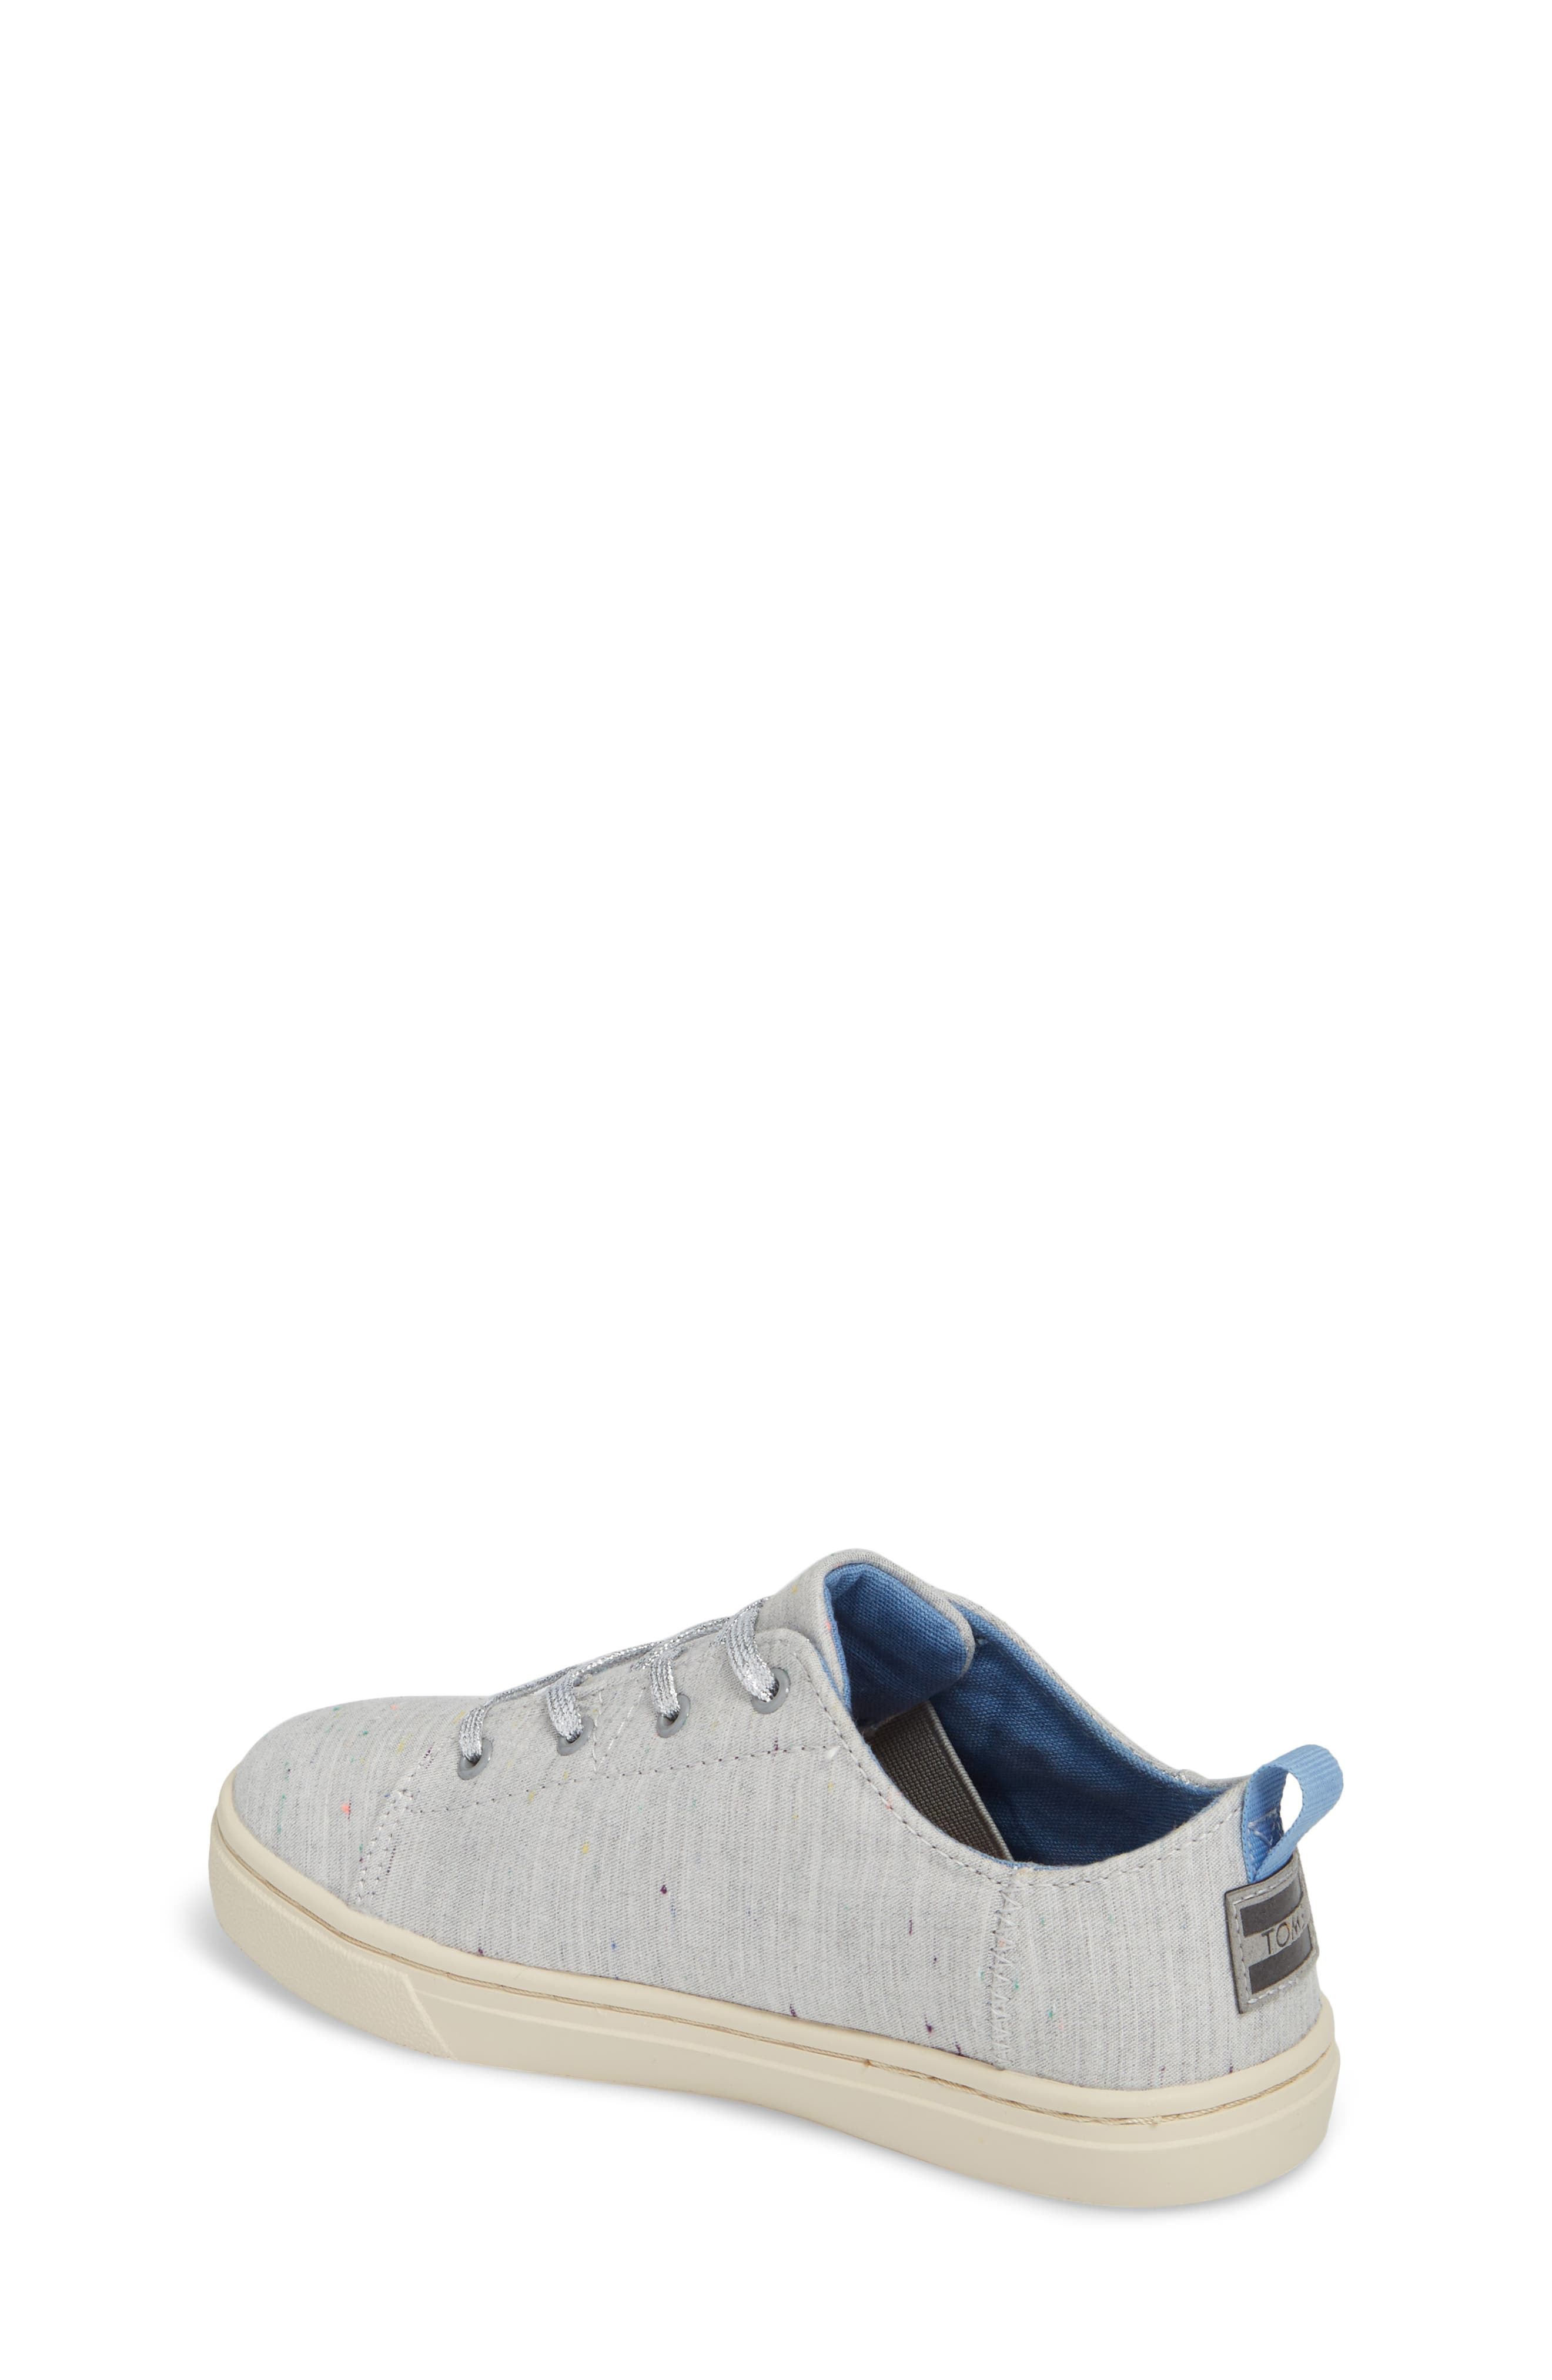 Lenny Embroidered Sneaker,                             Alternate thumbnail 2, color,                             Grey Multi Drizzly Weather